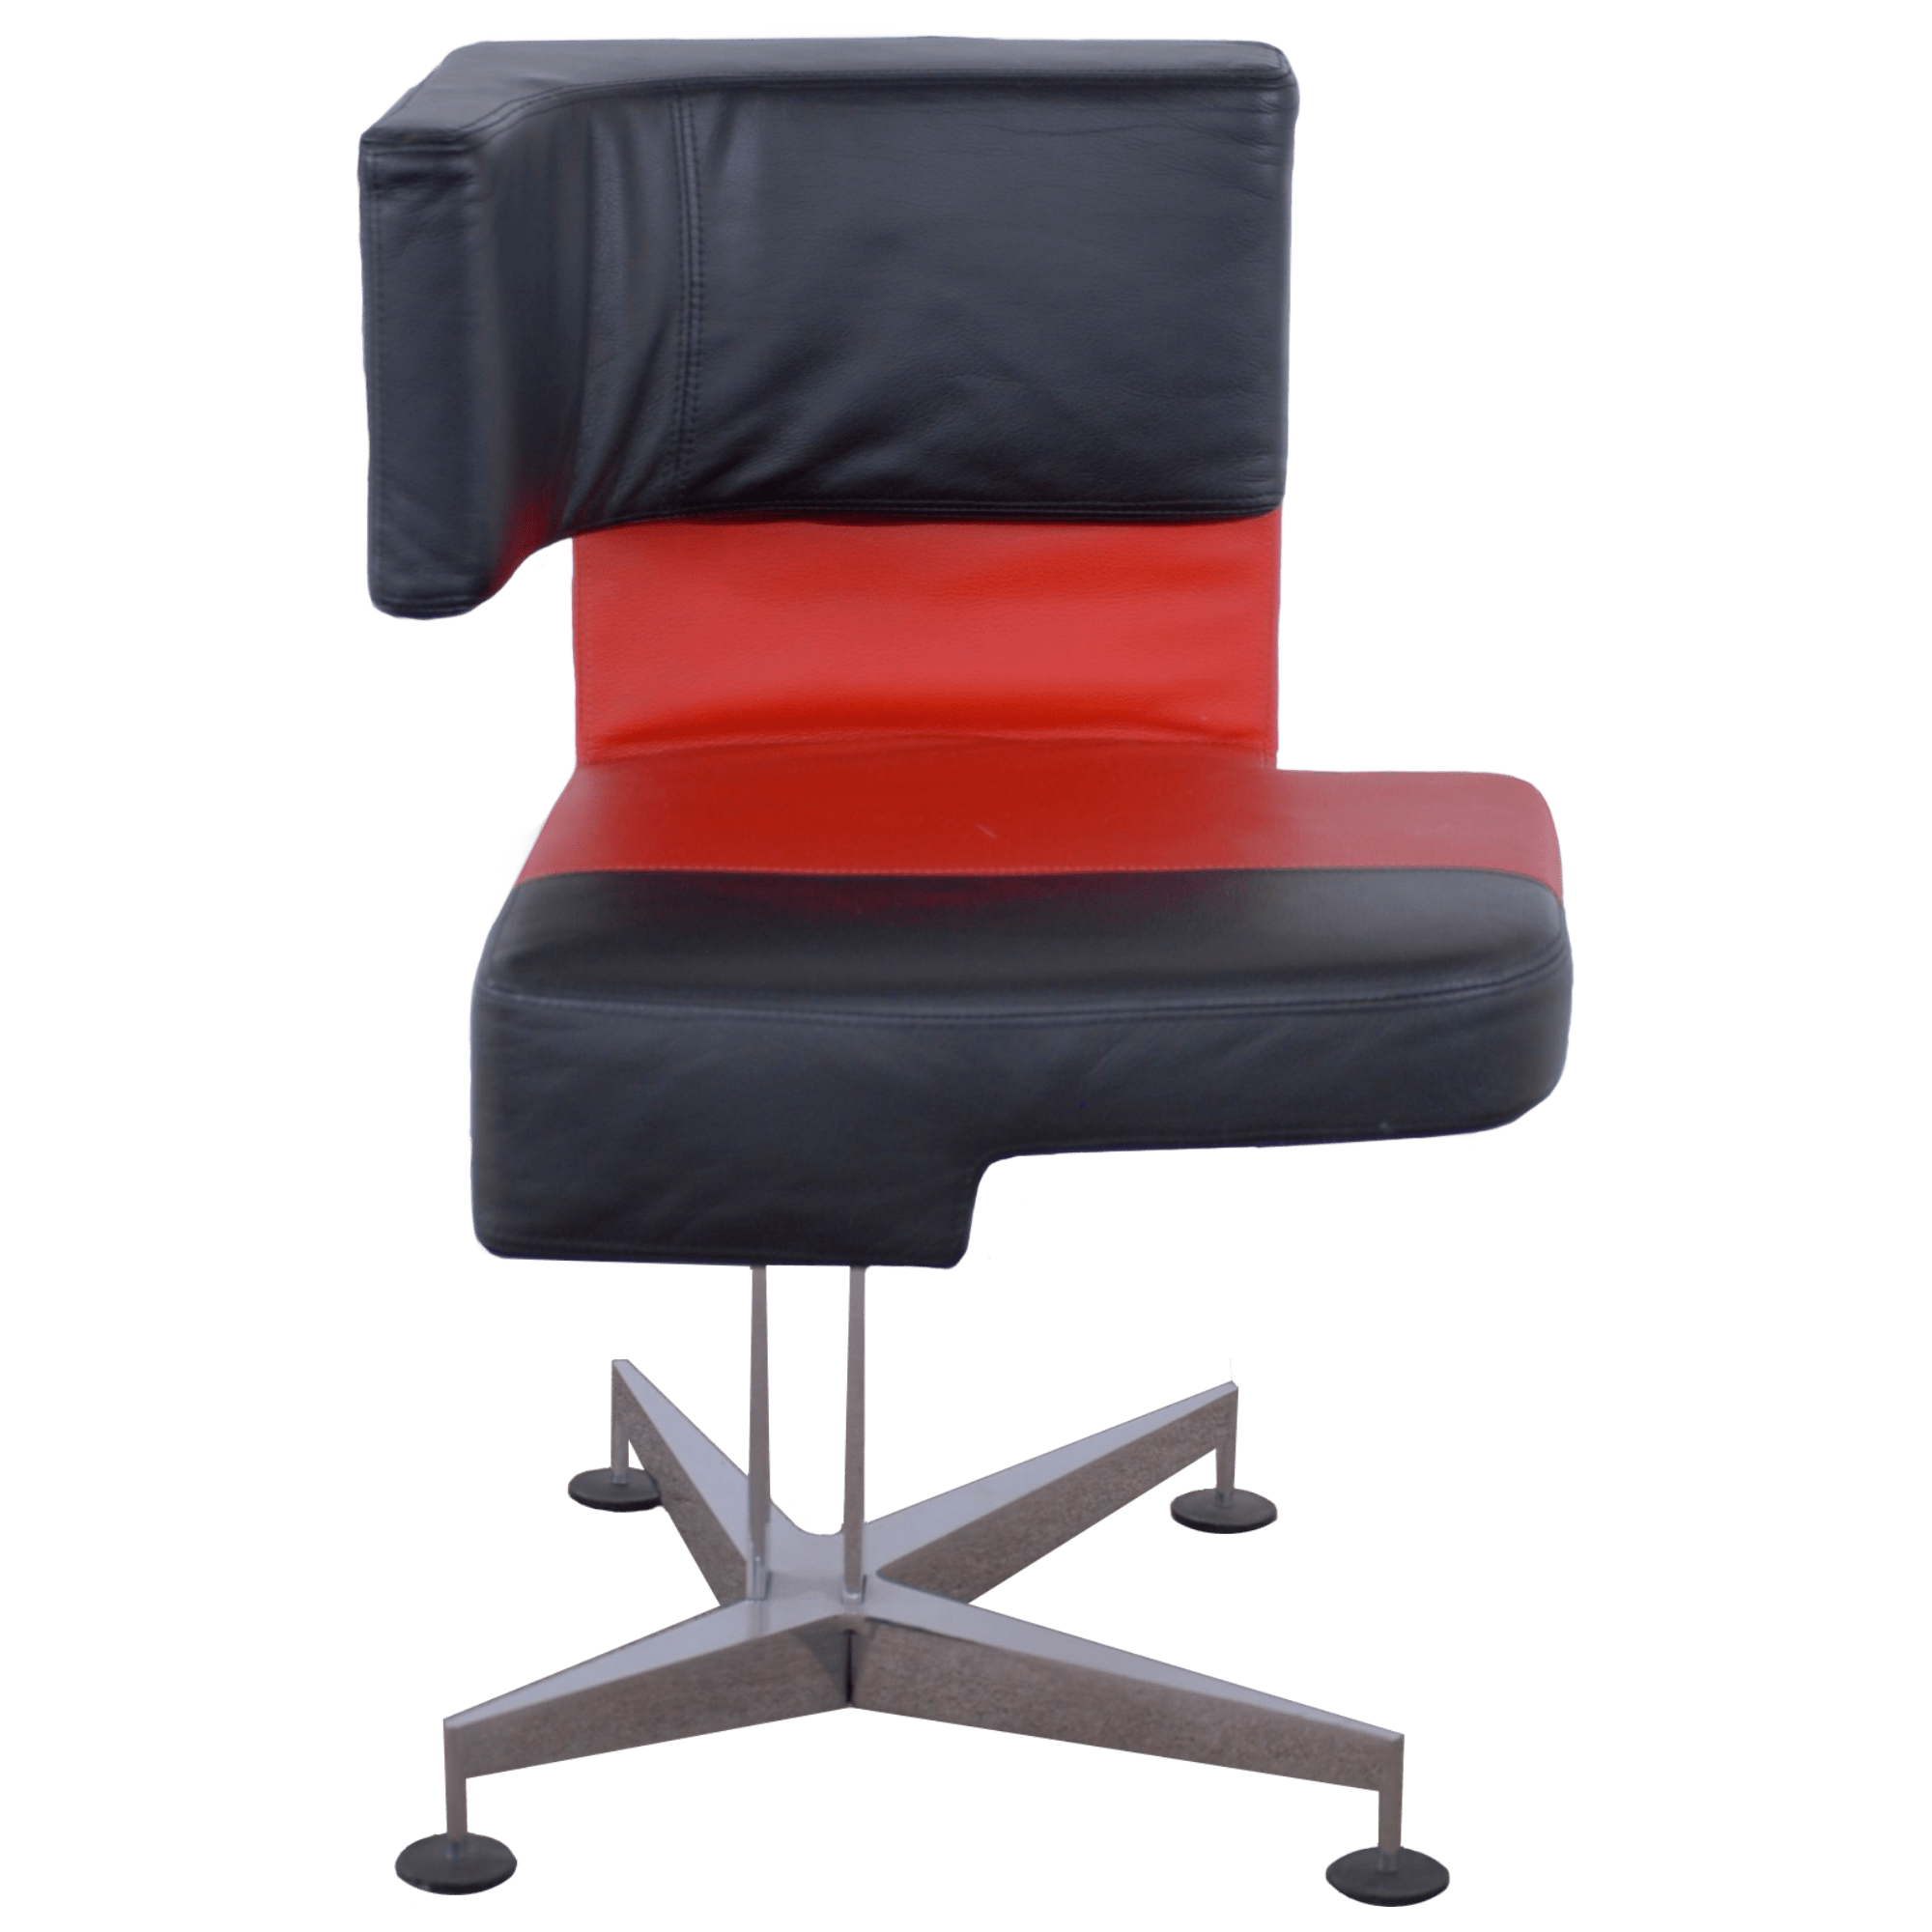 Red Desk Chair Marc Newson Style Desk Chair By Sedus